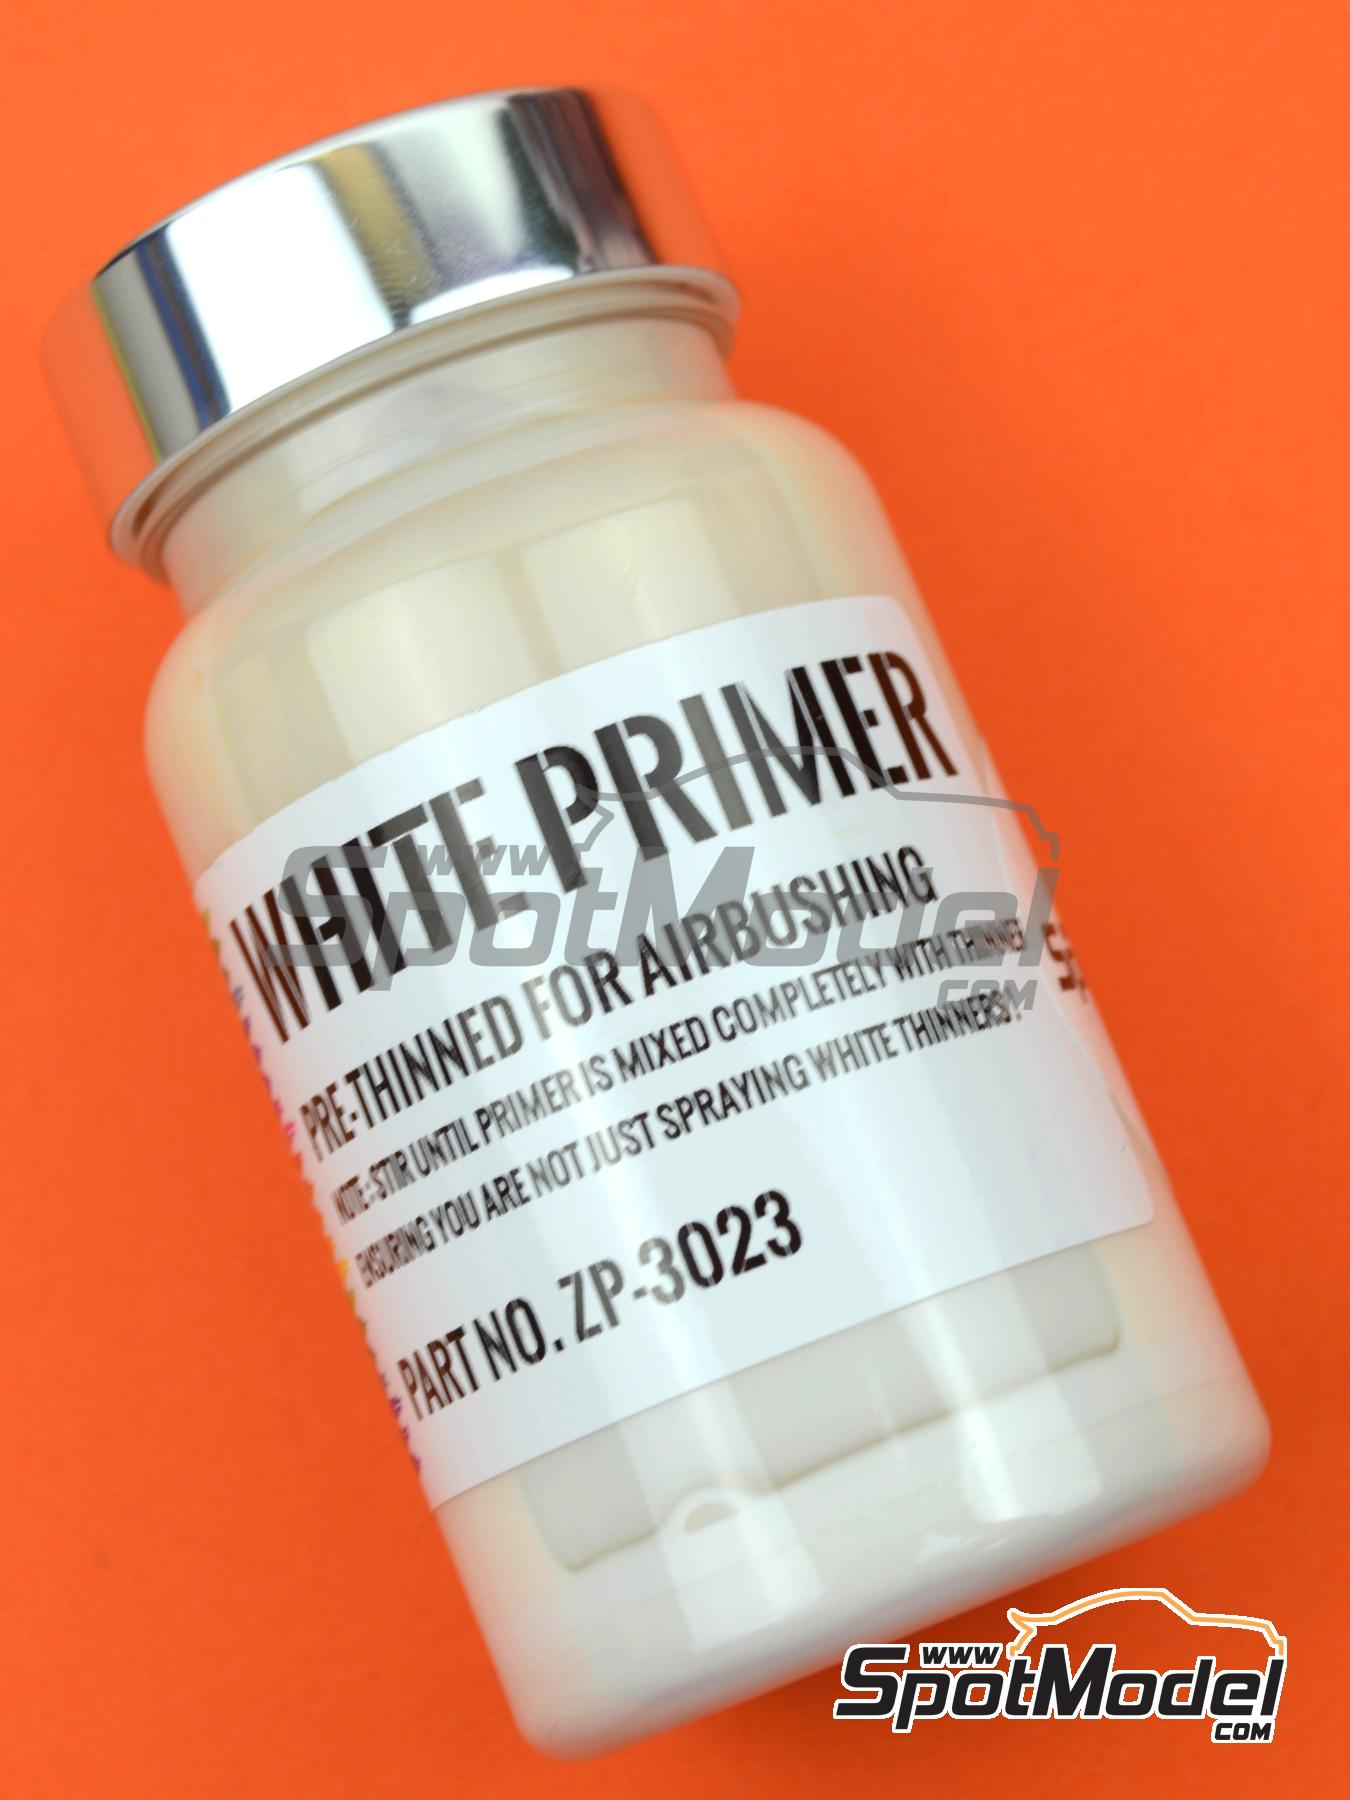 White Primer - Micro Filler -120ml | Primer manufactured by Zero Paints (ref. ZP-3023) image